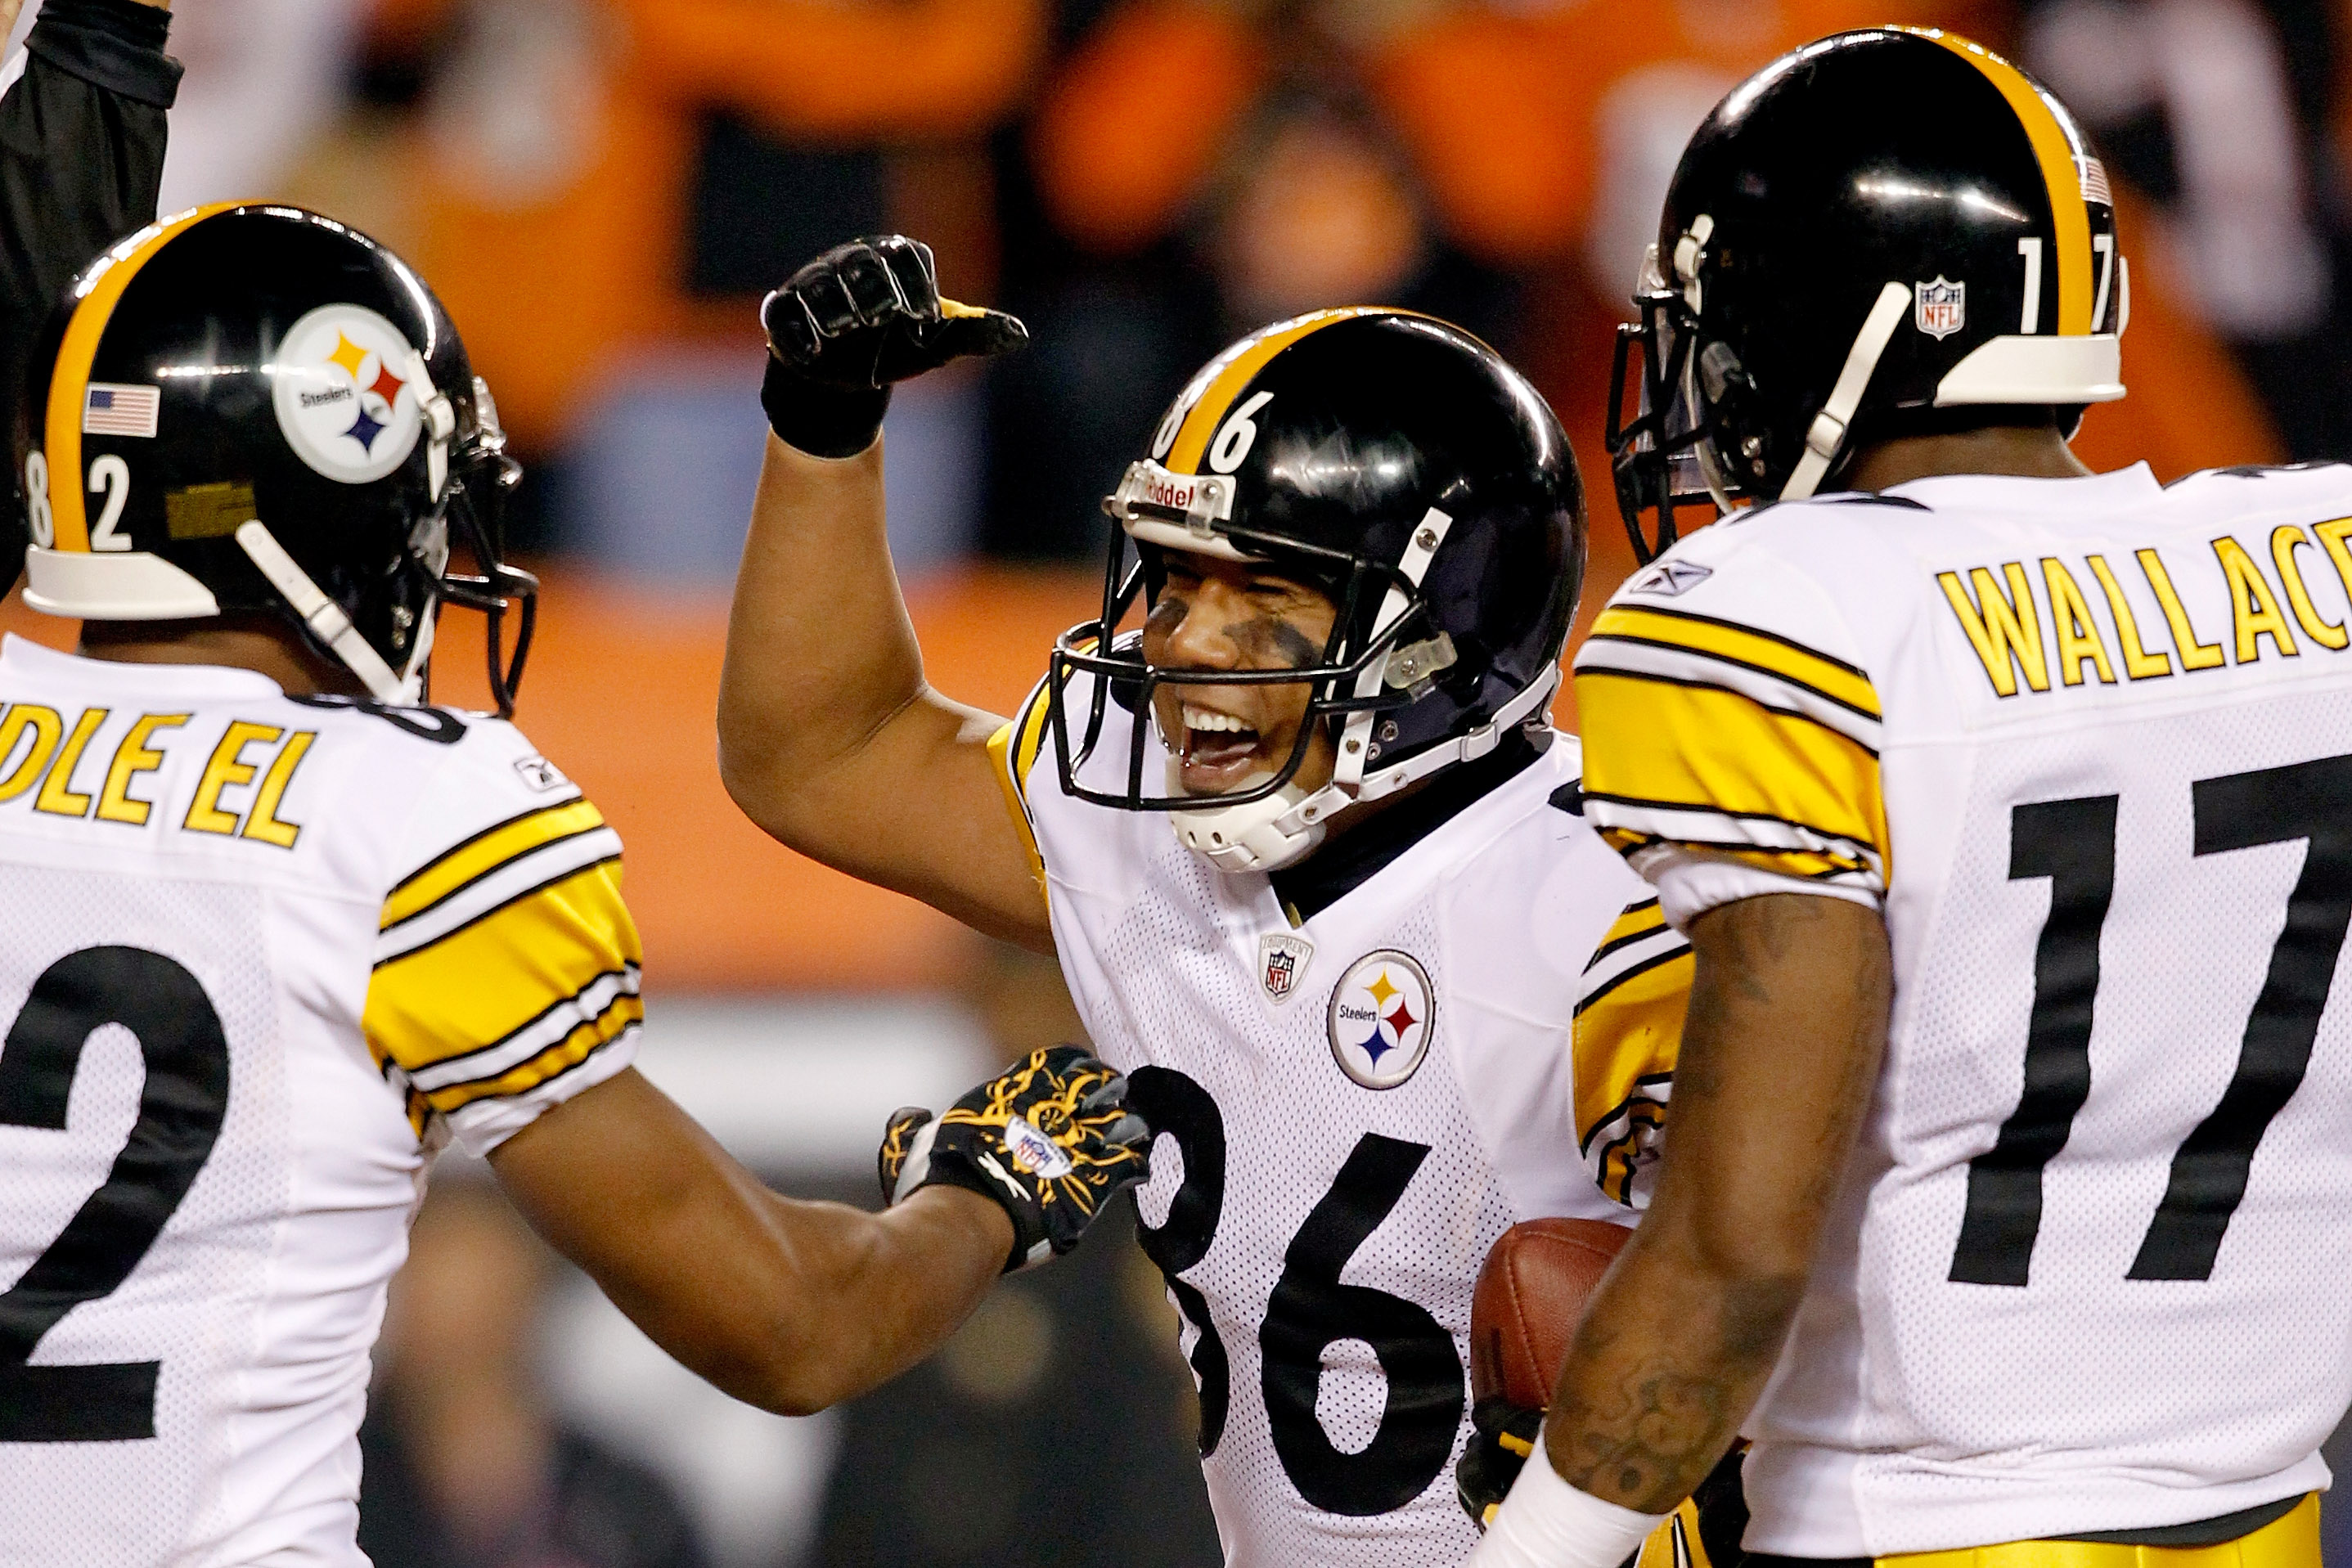 CINCINNATI - NOVEMBER 08:  Hines Ward #86 of the Pittsburgh Steelers celebrates in the endzone with Antwaan Randle El #82 and Mike Wallace #17 after scoring a touchdown against the Cincinnati Bengals at Paul Brown Stadium on November 8, 2010 in Cincinnati